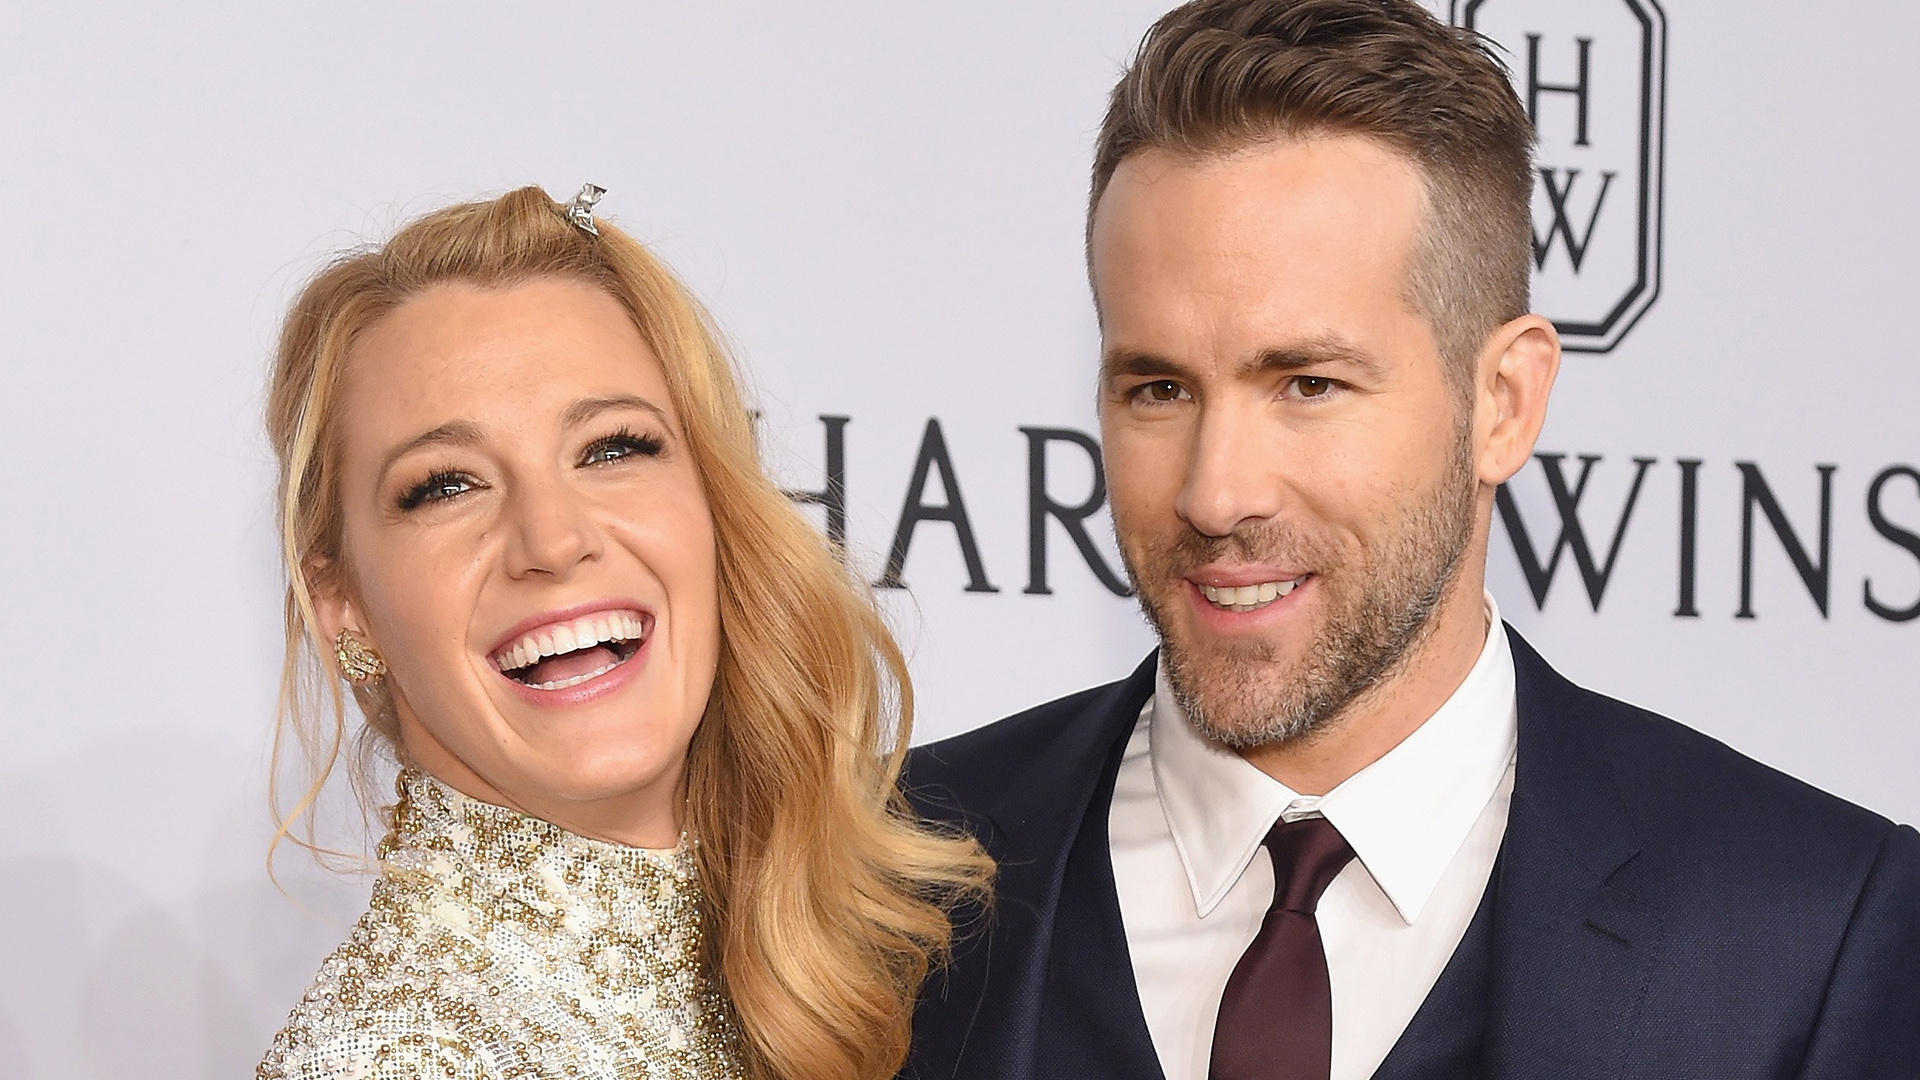 who is ryan reynolds married to now